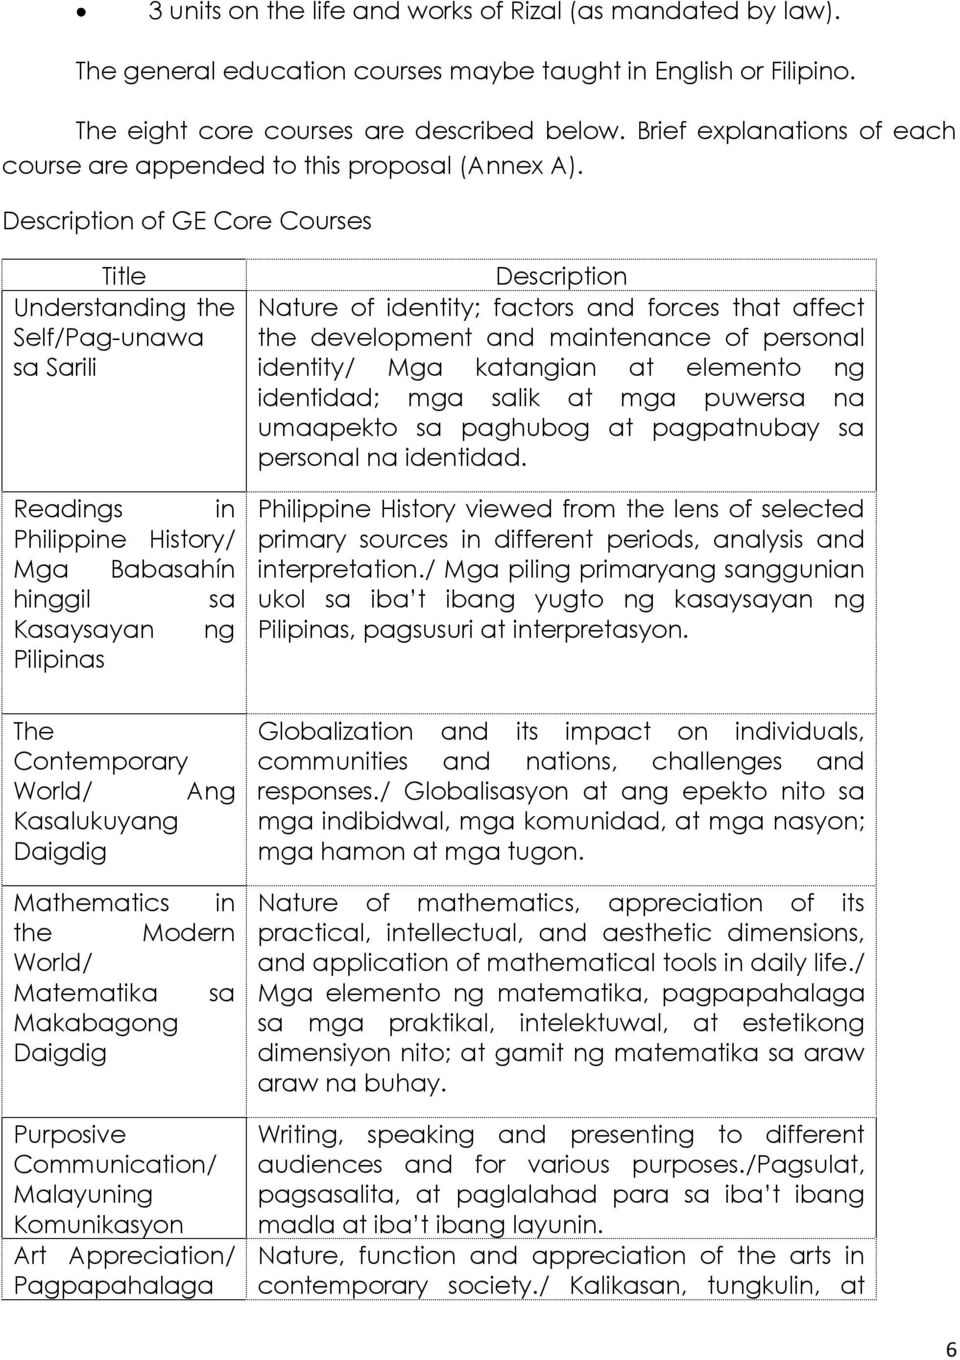 Description of GE Core Courses Title Understanding the Self/Pag-unawa sa Sarili Readings in Philippine History/ Mga Babasahín hinggil sa Kasaysayan ng Pilipinas Description Nature of identity;